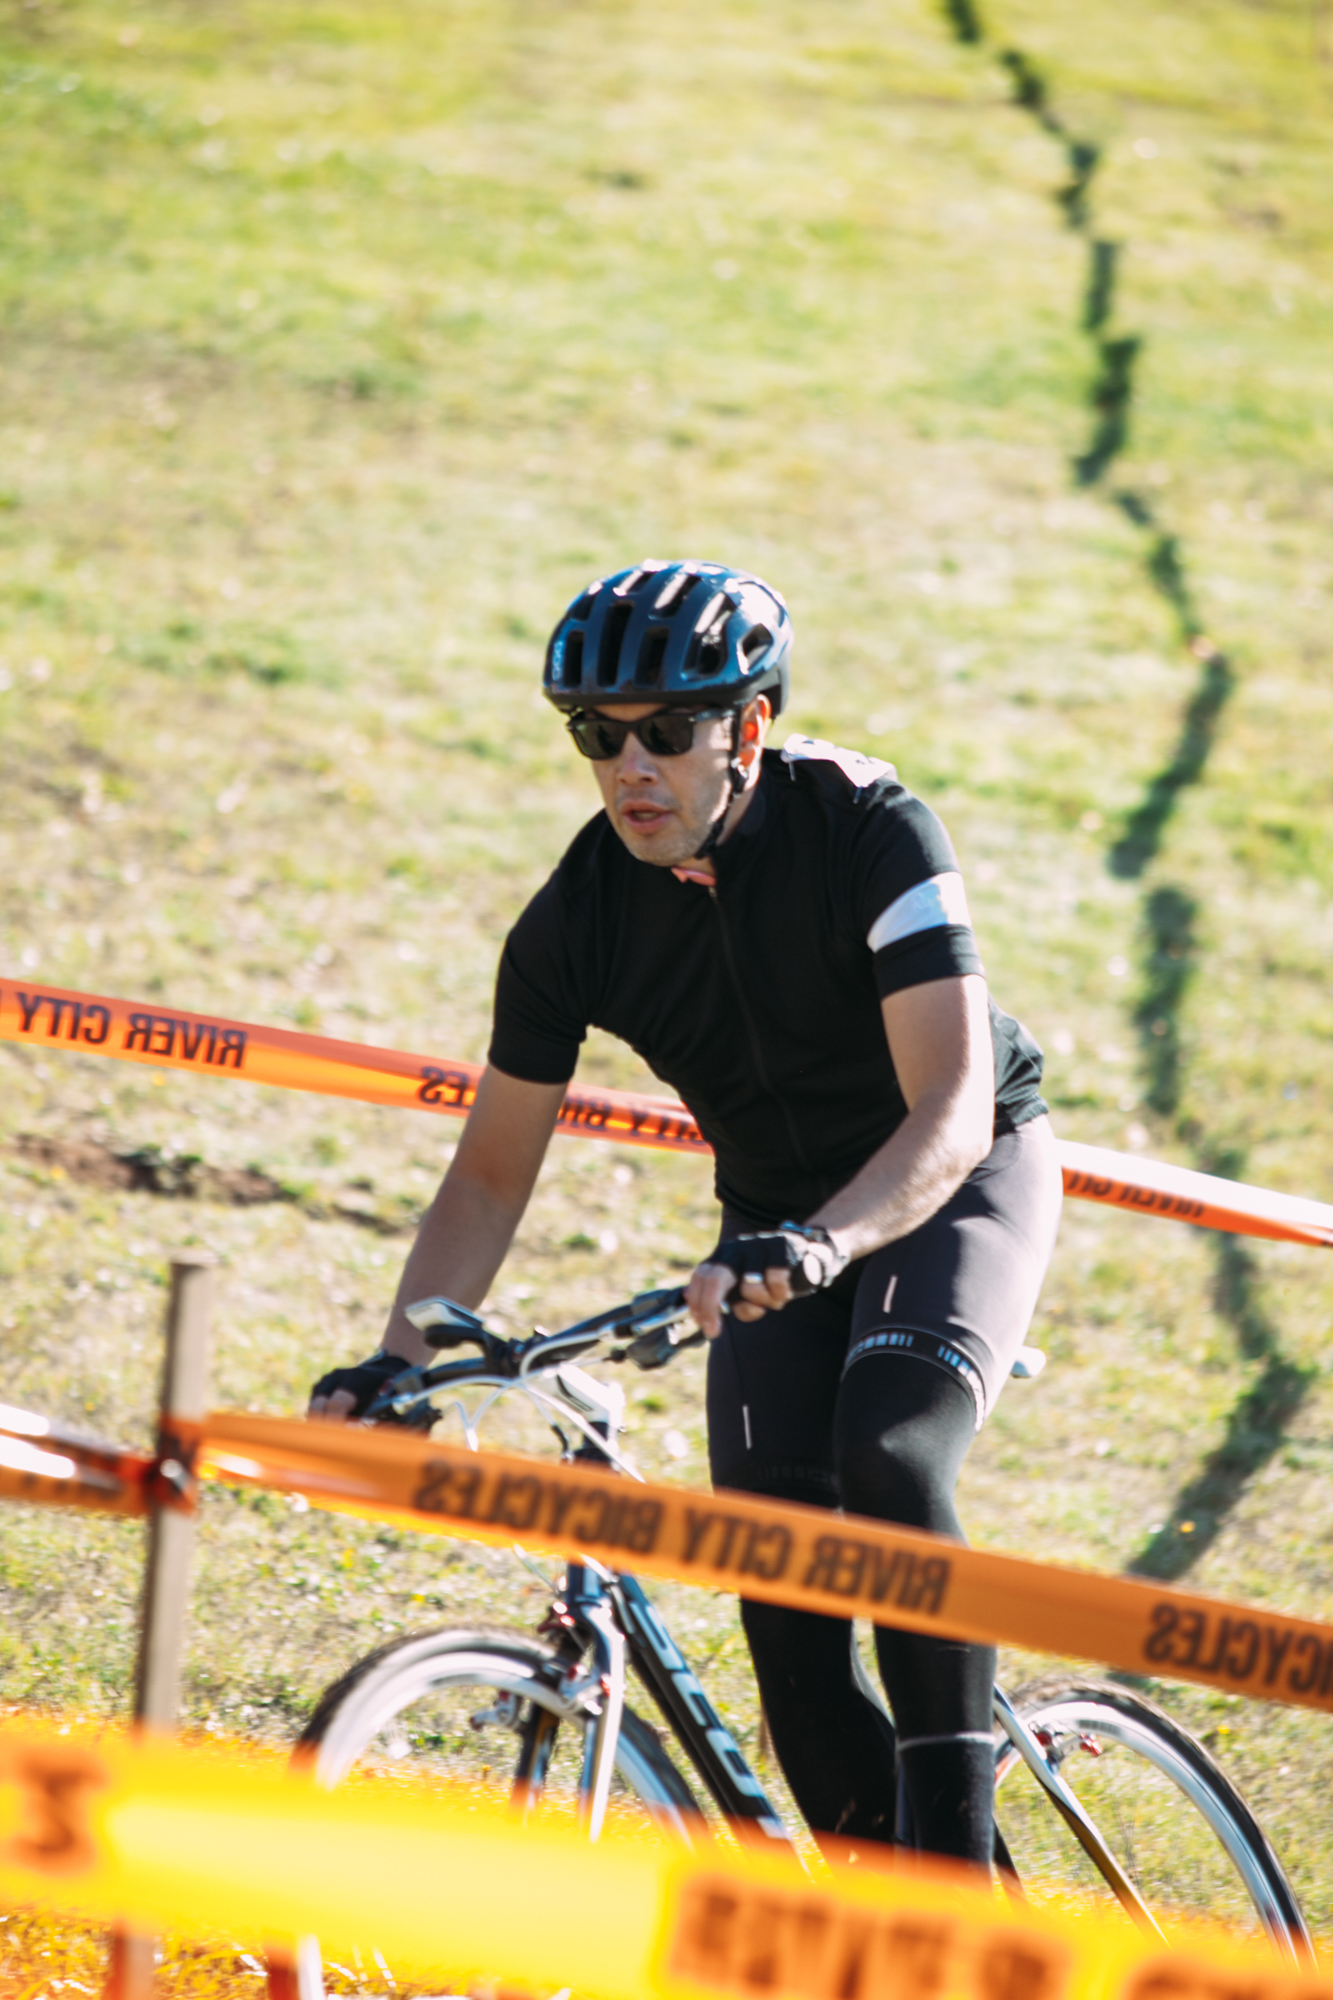 Cyclocross18_CCCX_RainierHS-5-mettlecycling.jpg